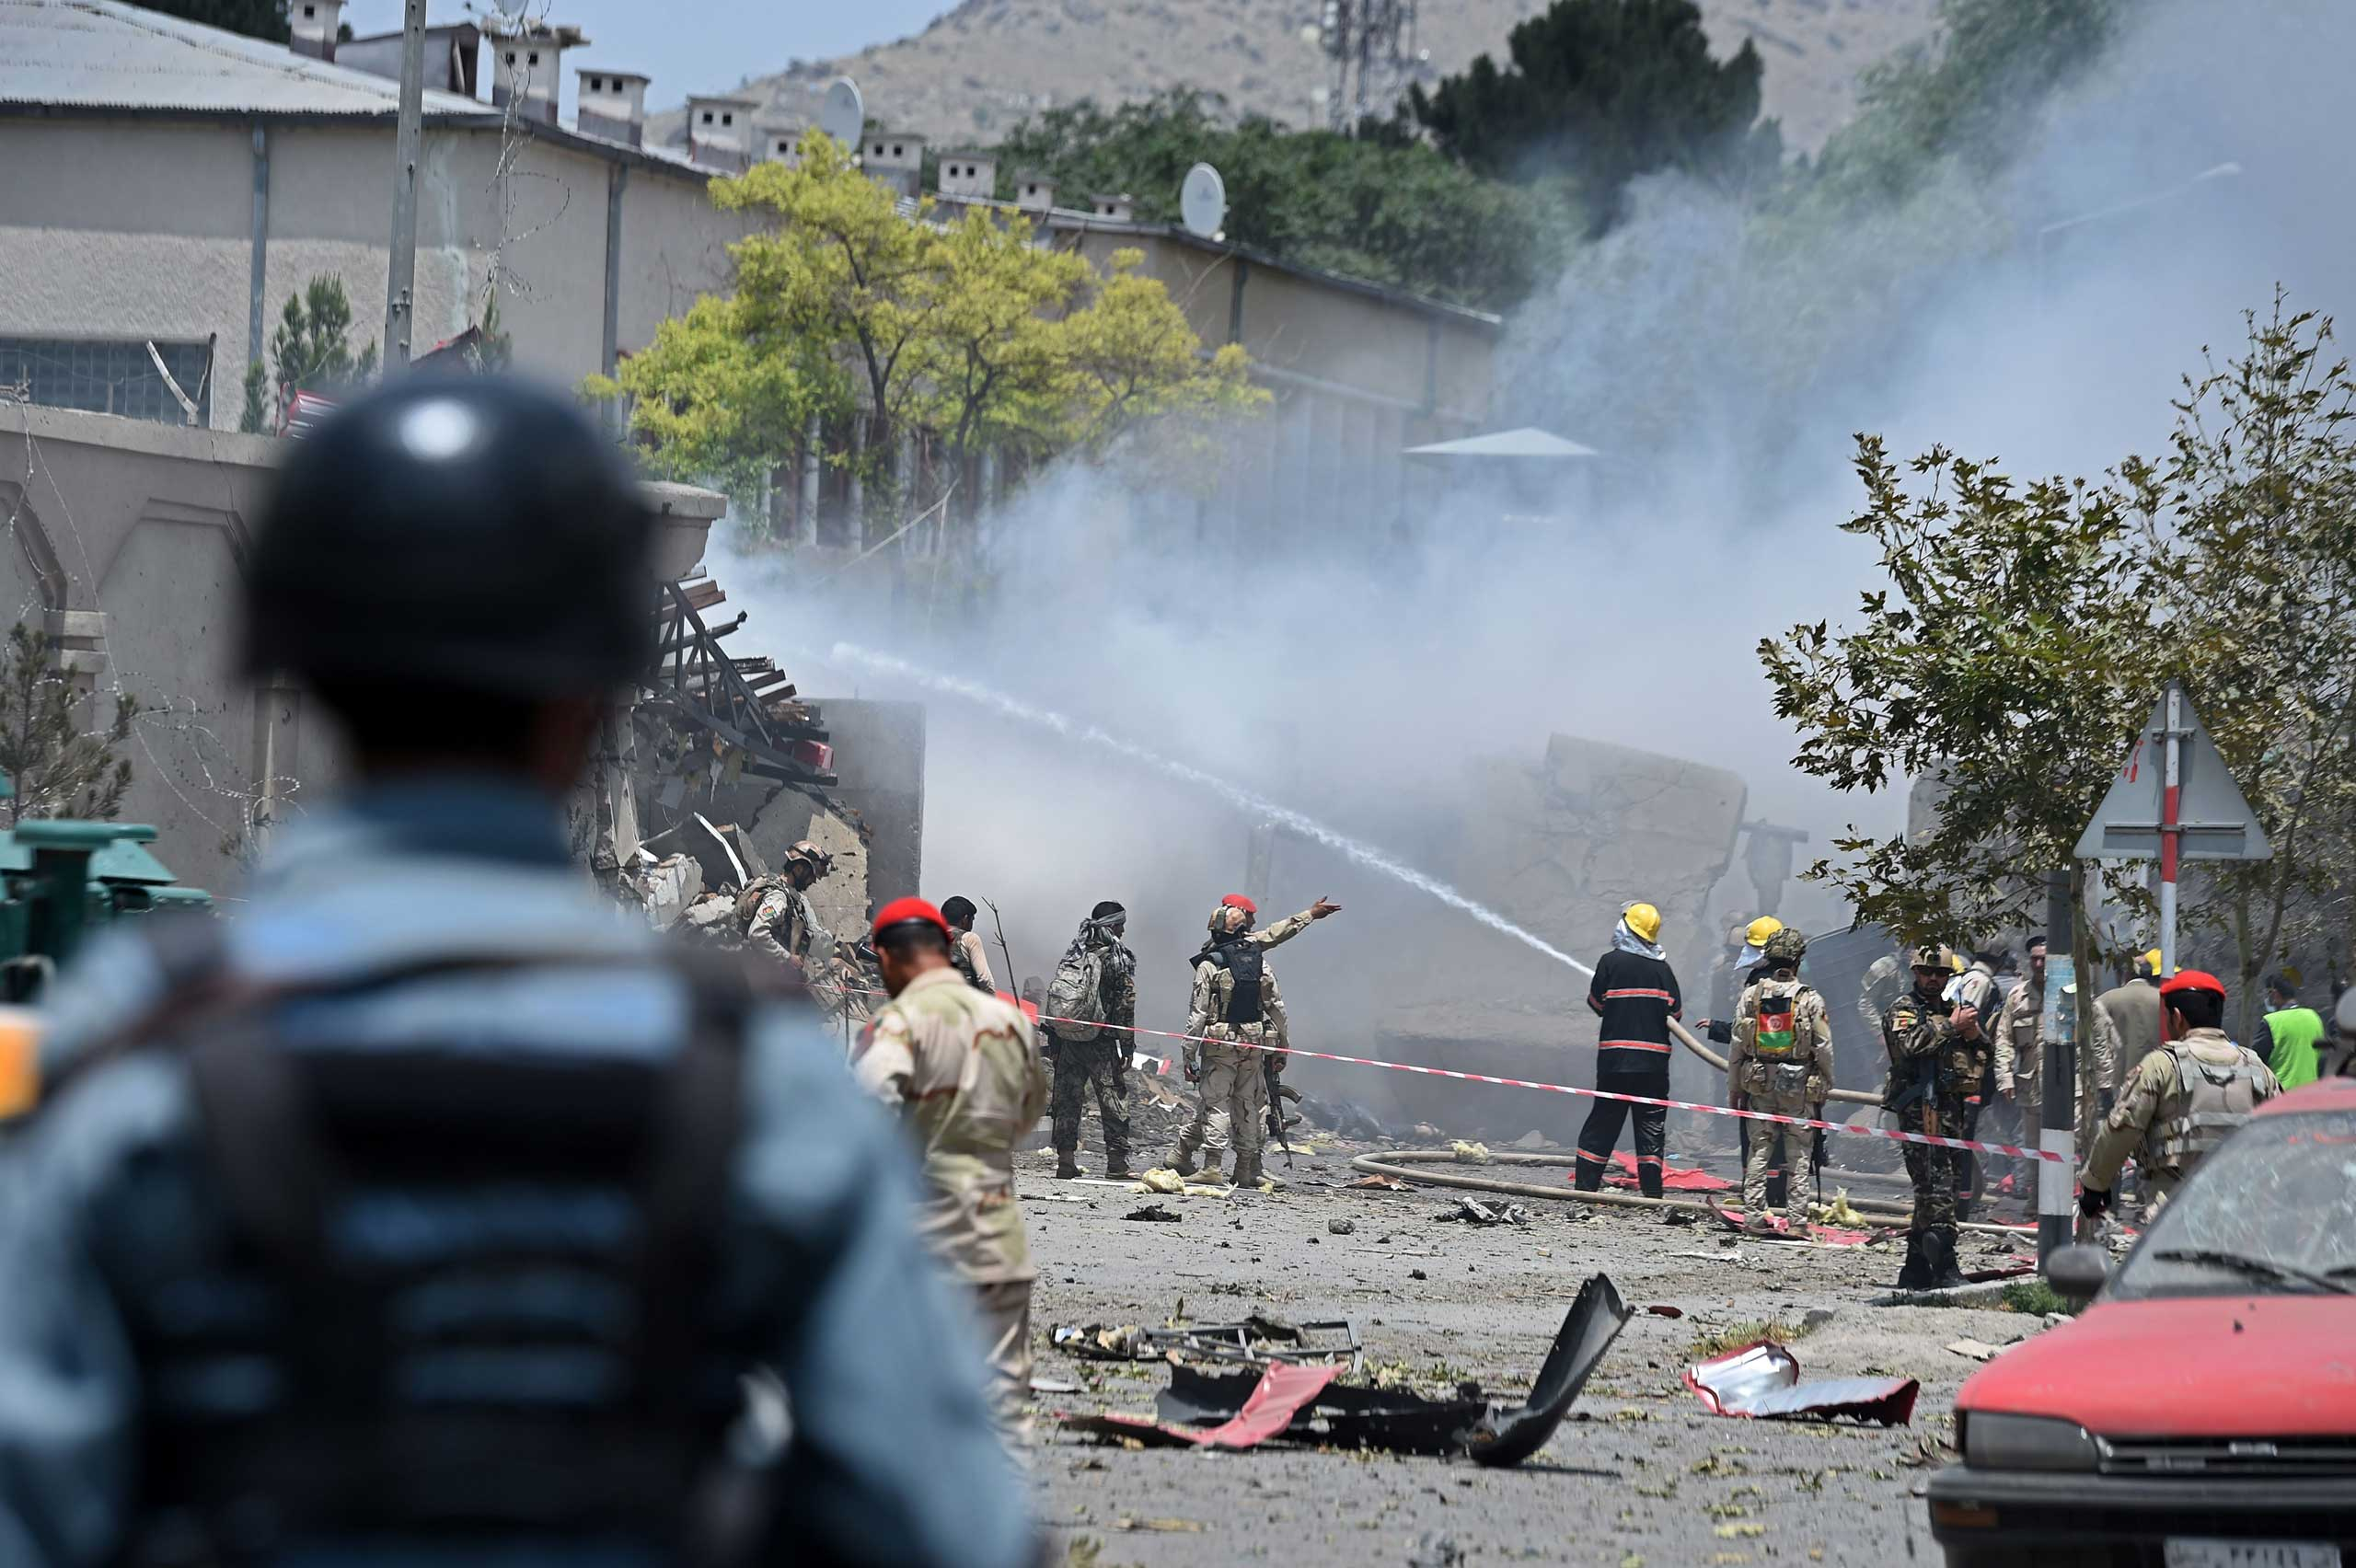 Afghan firefighters work to put out a fire at the site of a suicide bomb attack on the Afghan Parliament building in Kabul, Afghanistan on June 22, 2015.